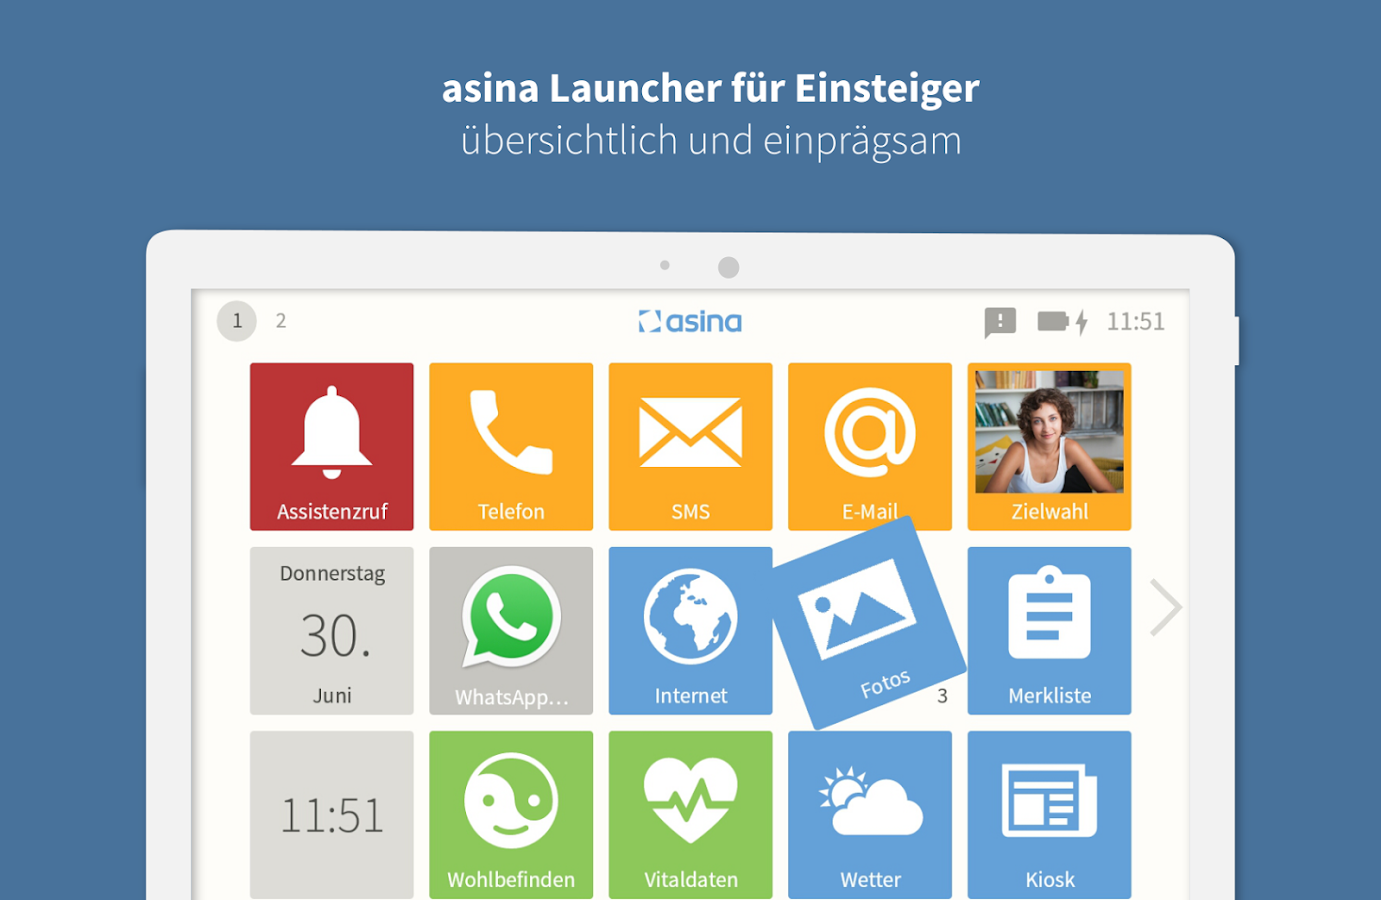 asina Launcher für Senioren- screenshot